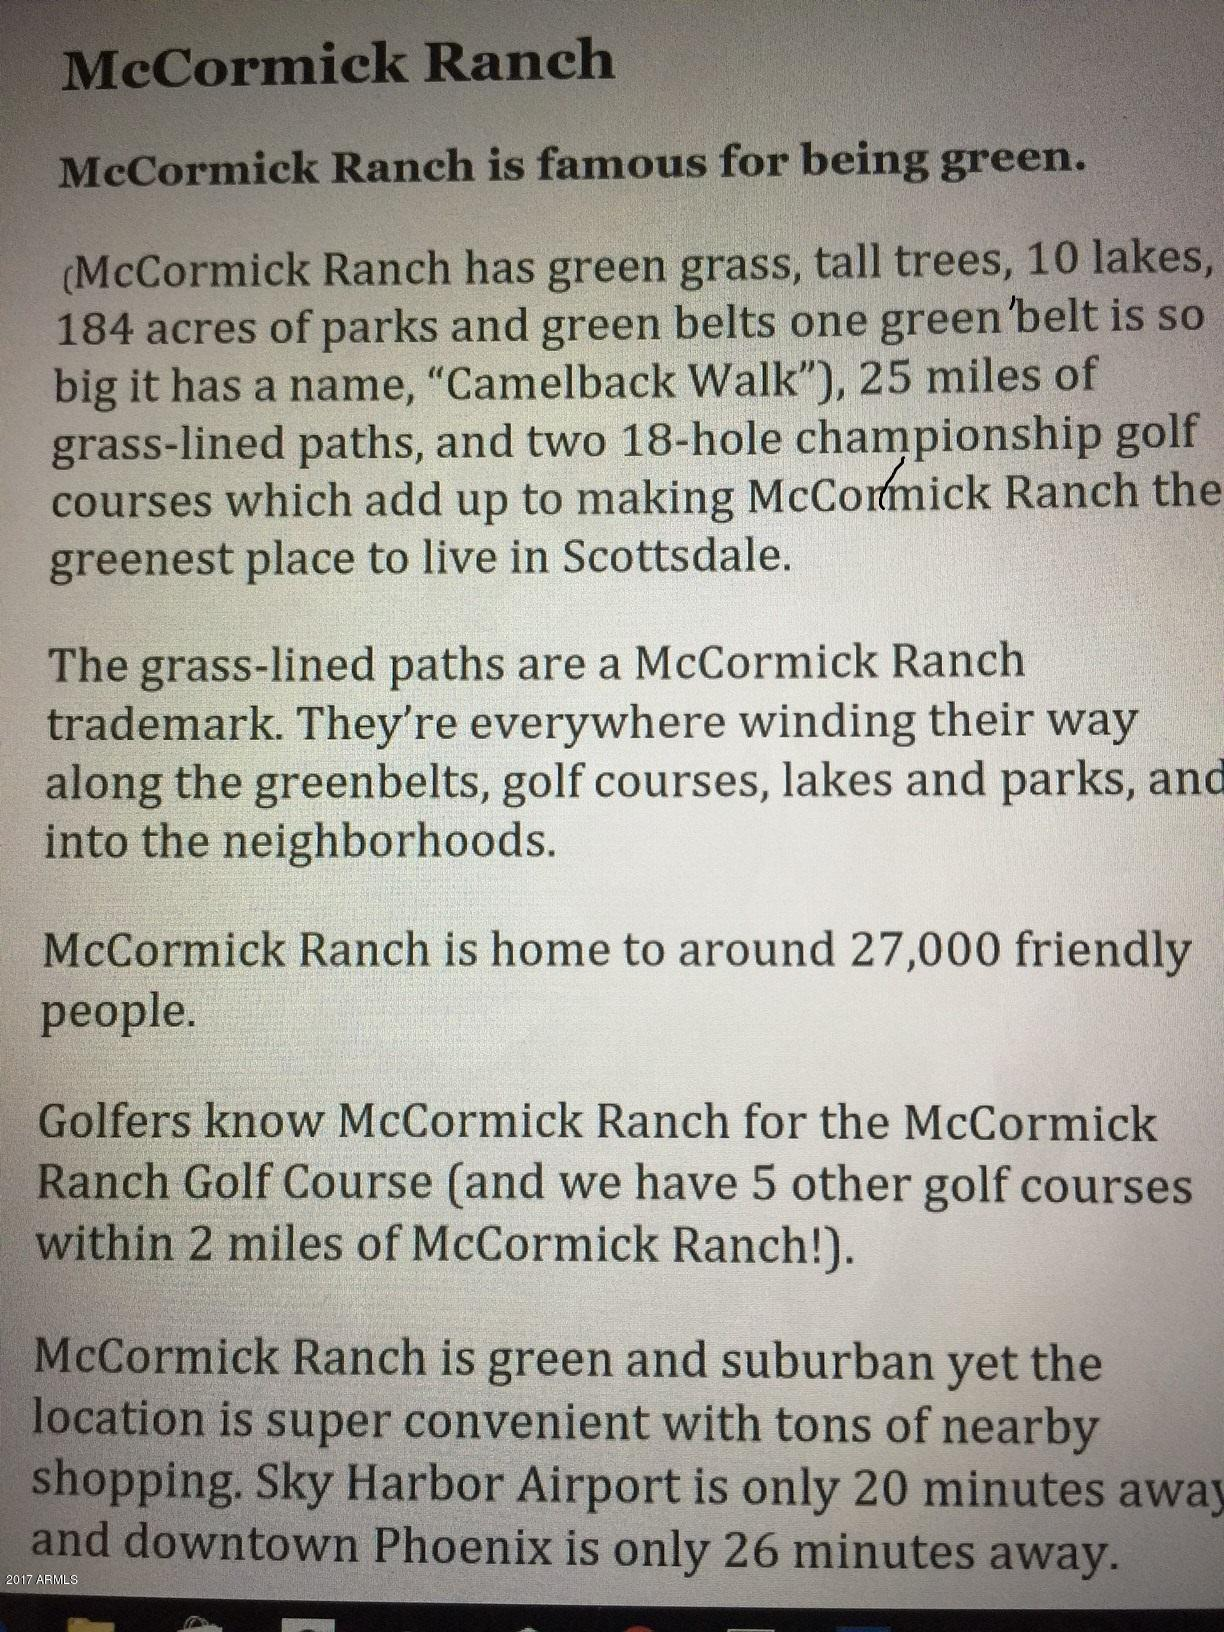 ABOUT MCCORMICK RANCH